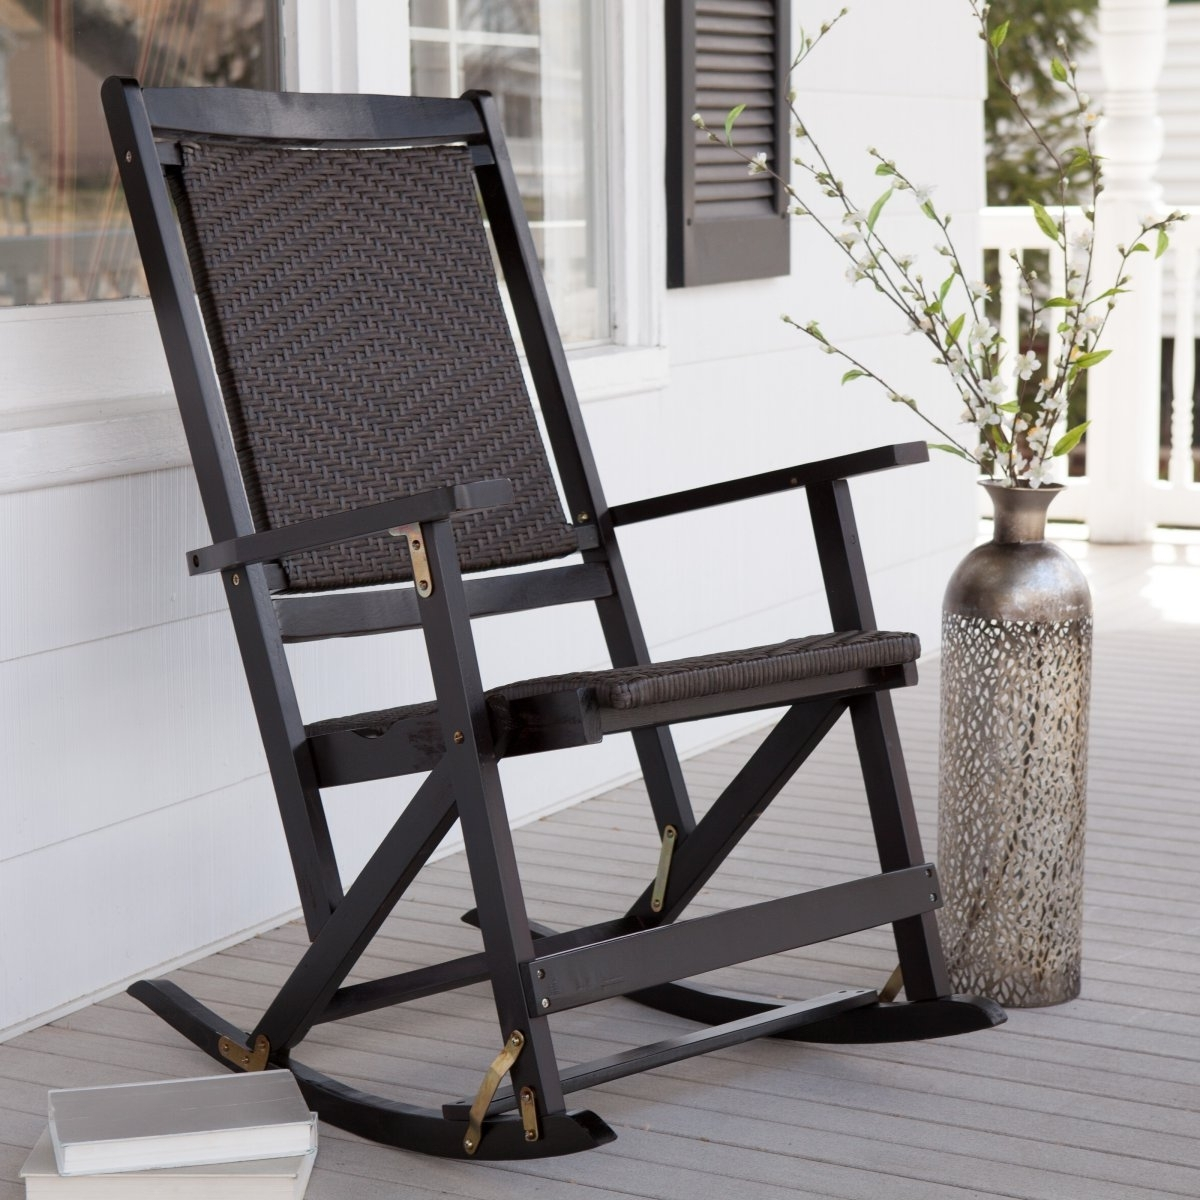 Black Patio Rocking Chairs Intended For Favorite Phenomenal Black Rocking Chair About Remodel Small Home Decoration (View 10 of 20)